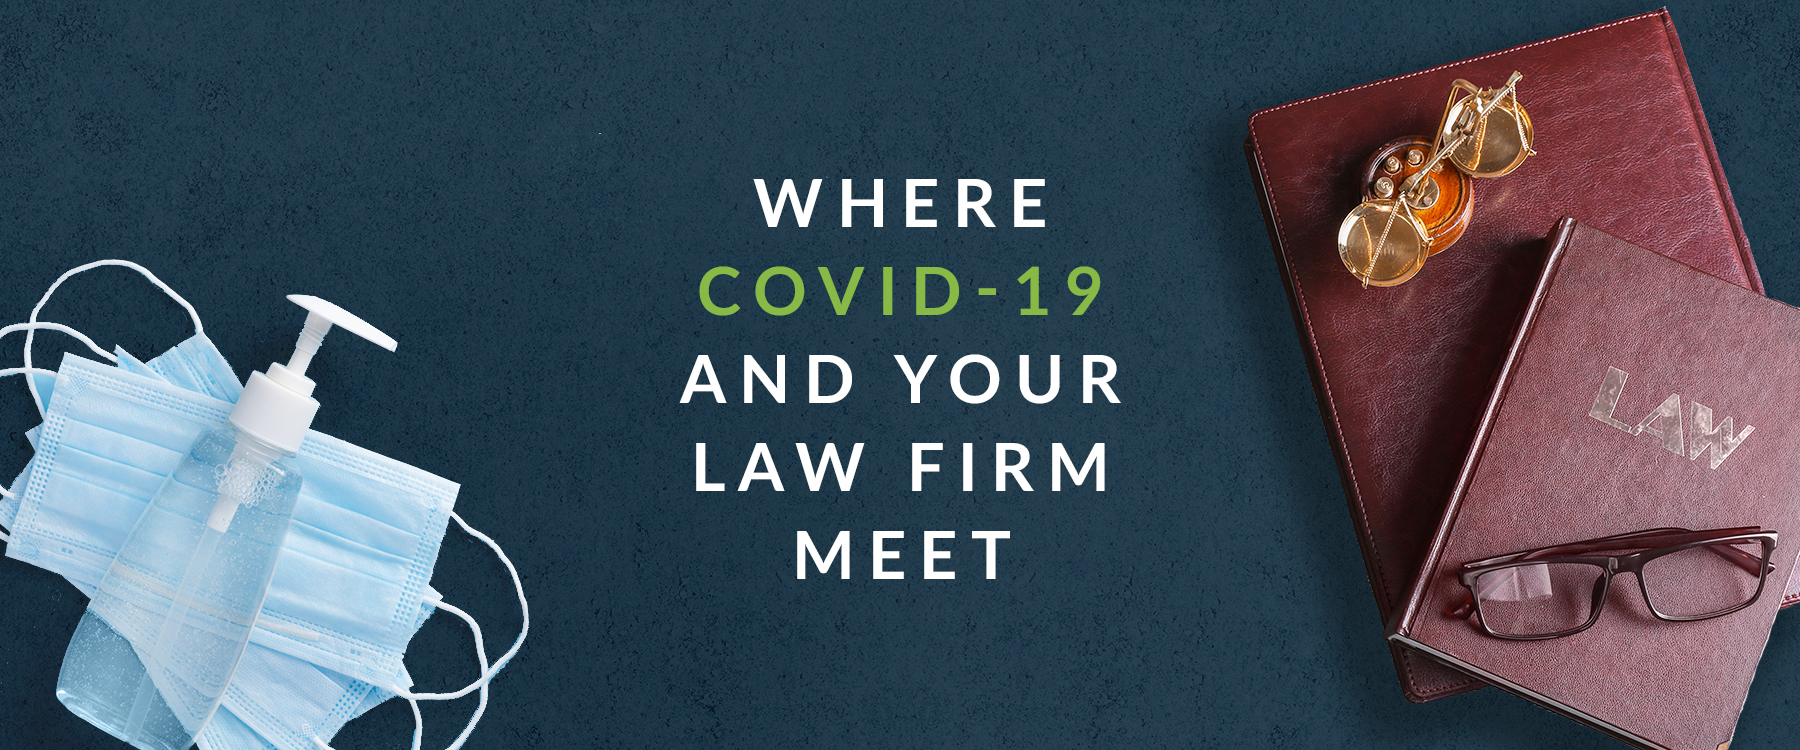 Keep your firm running during COVID-19